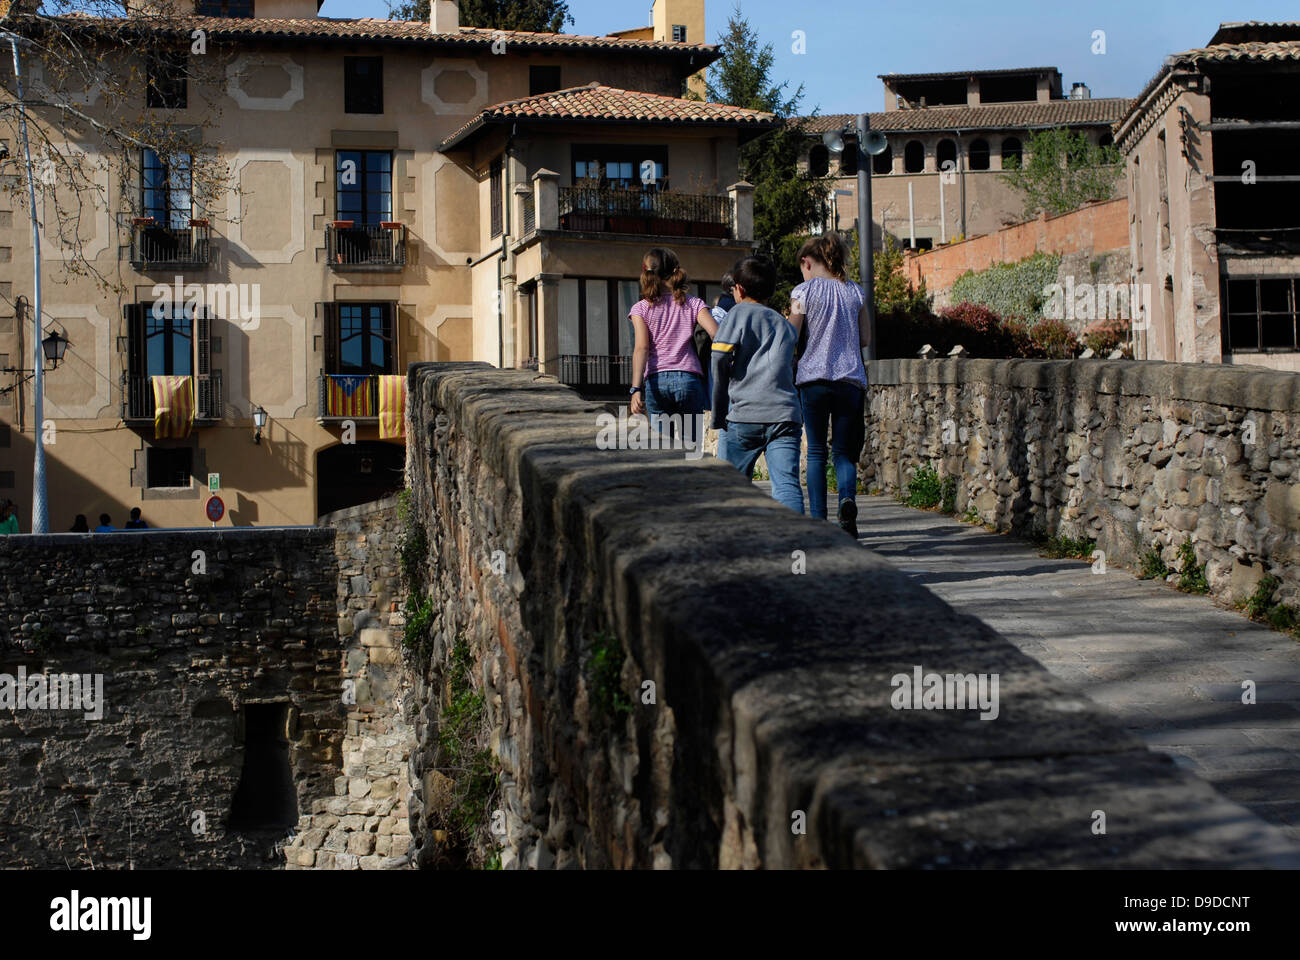 Women, Meder, Bridge, Old, Ancient, Queralt, Romanesque, adoberies,  Vic, Osona,  Barcelona, Catalonia, Spain, Europe - Stock Image